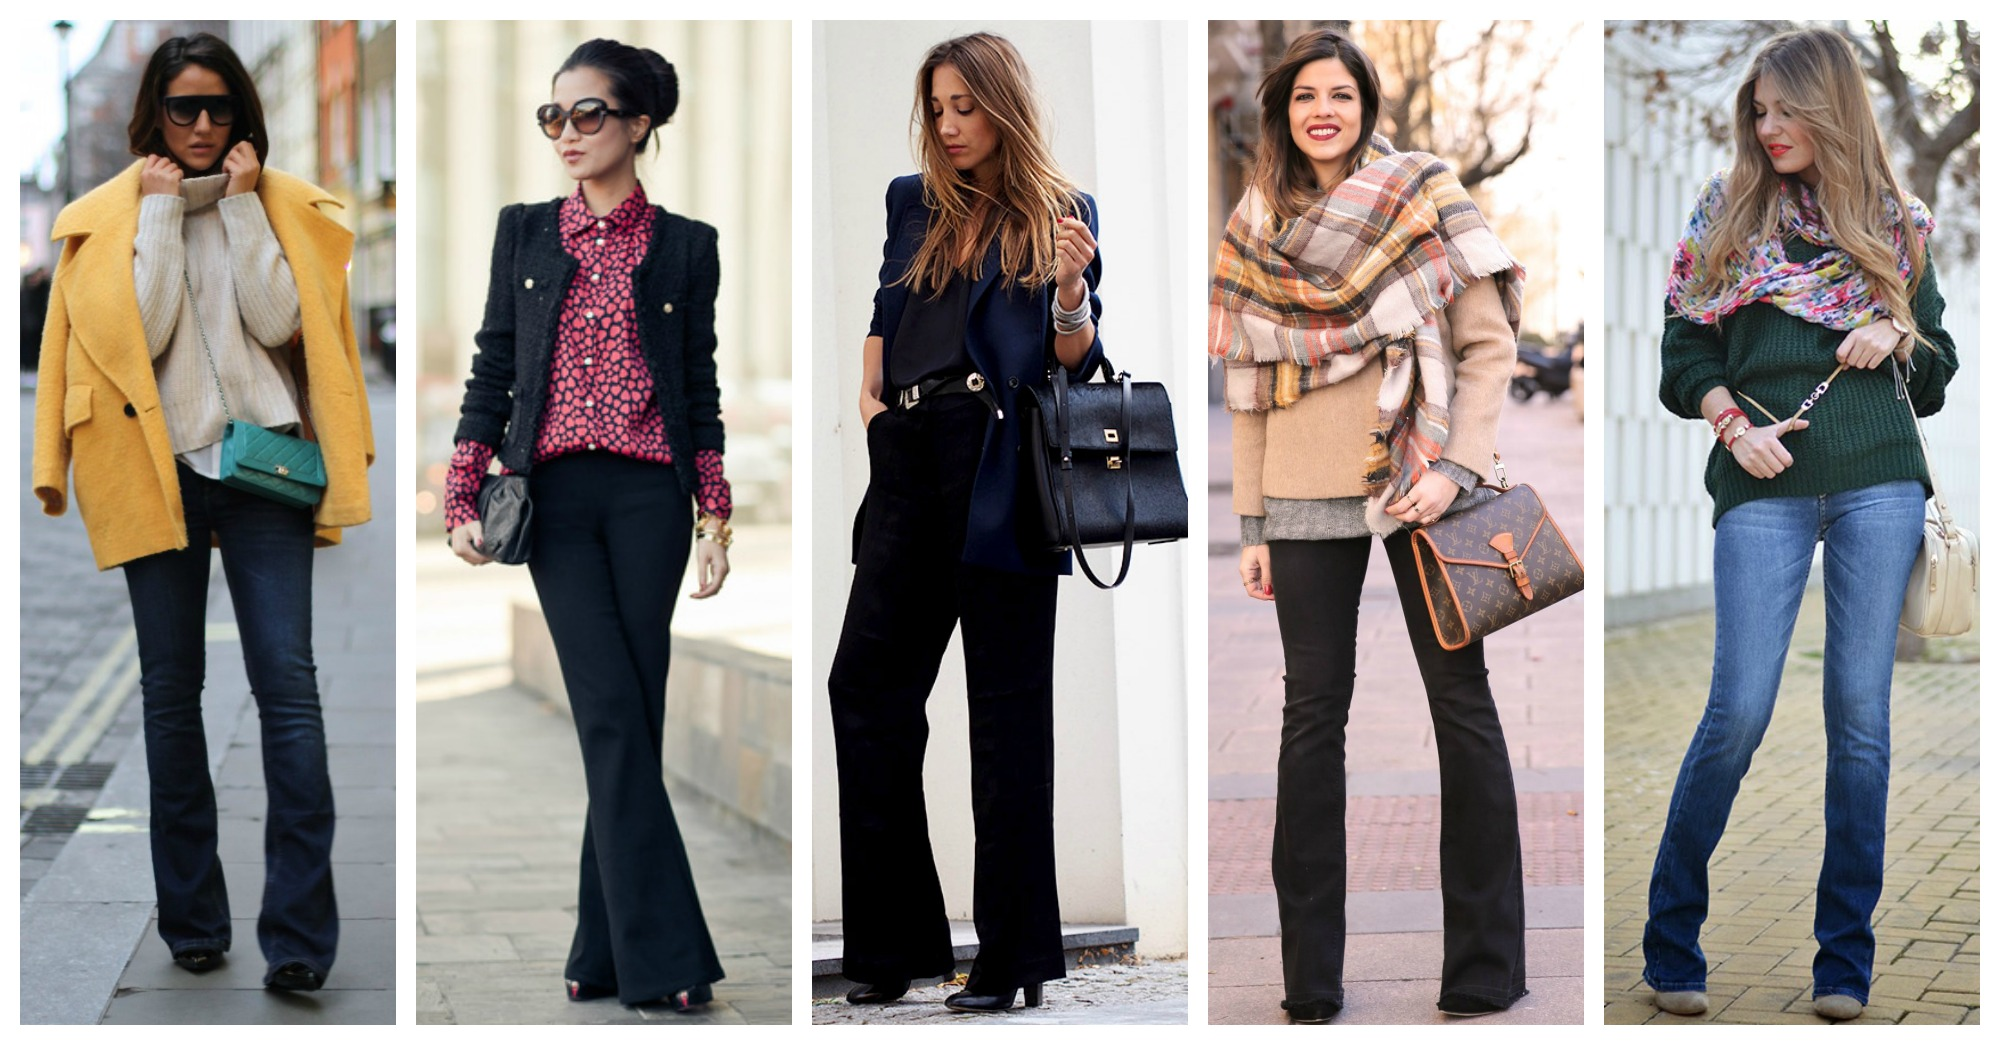 10 Ideas of How to Refresh Your Office Look With Flared Pants